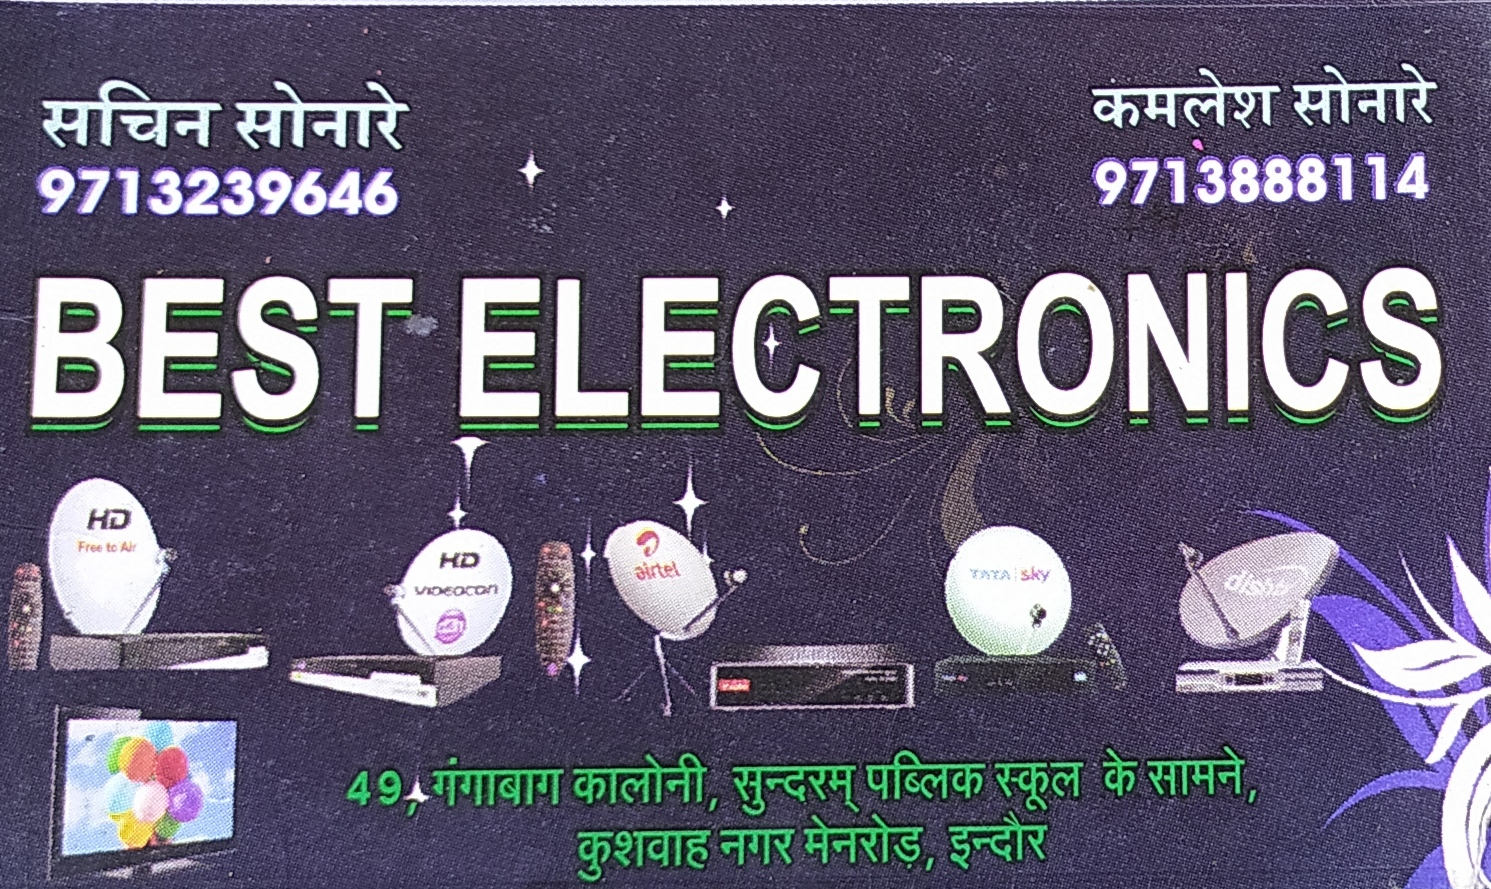 Best electronic